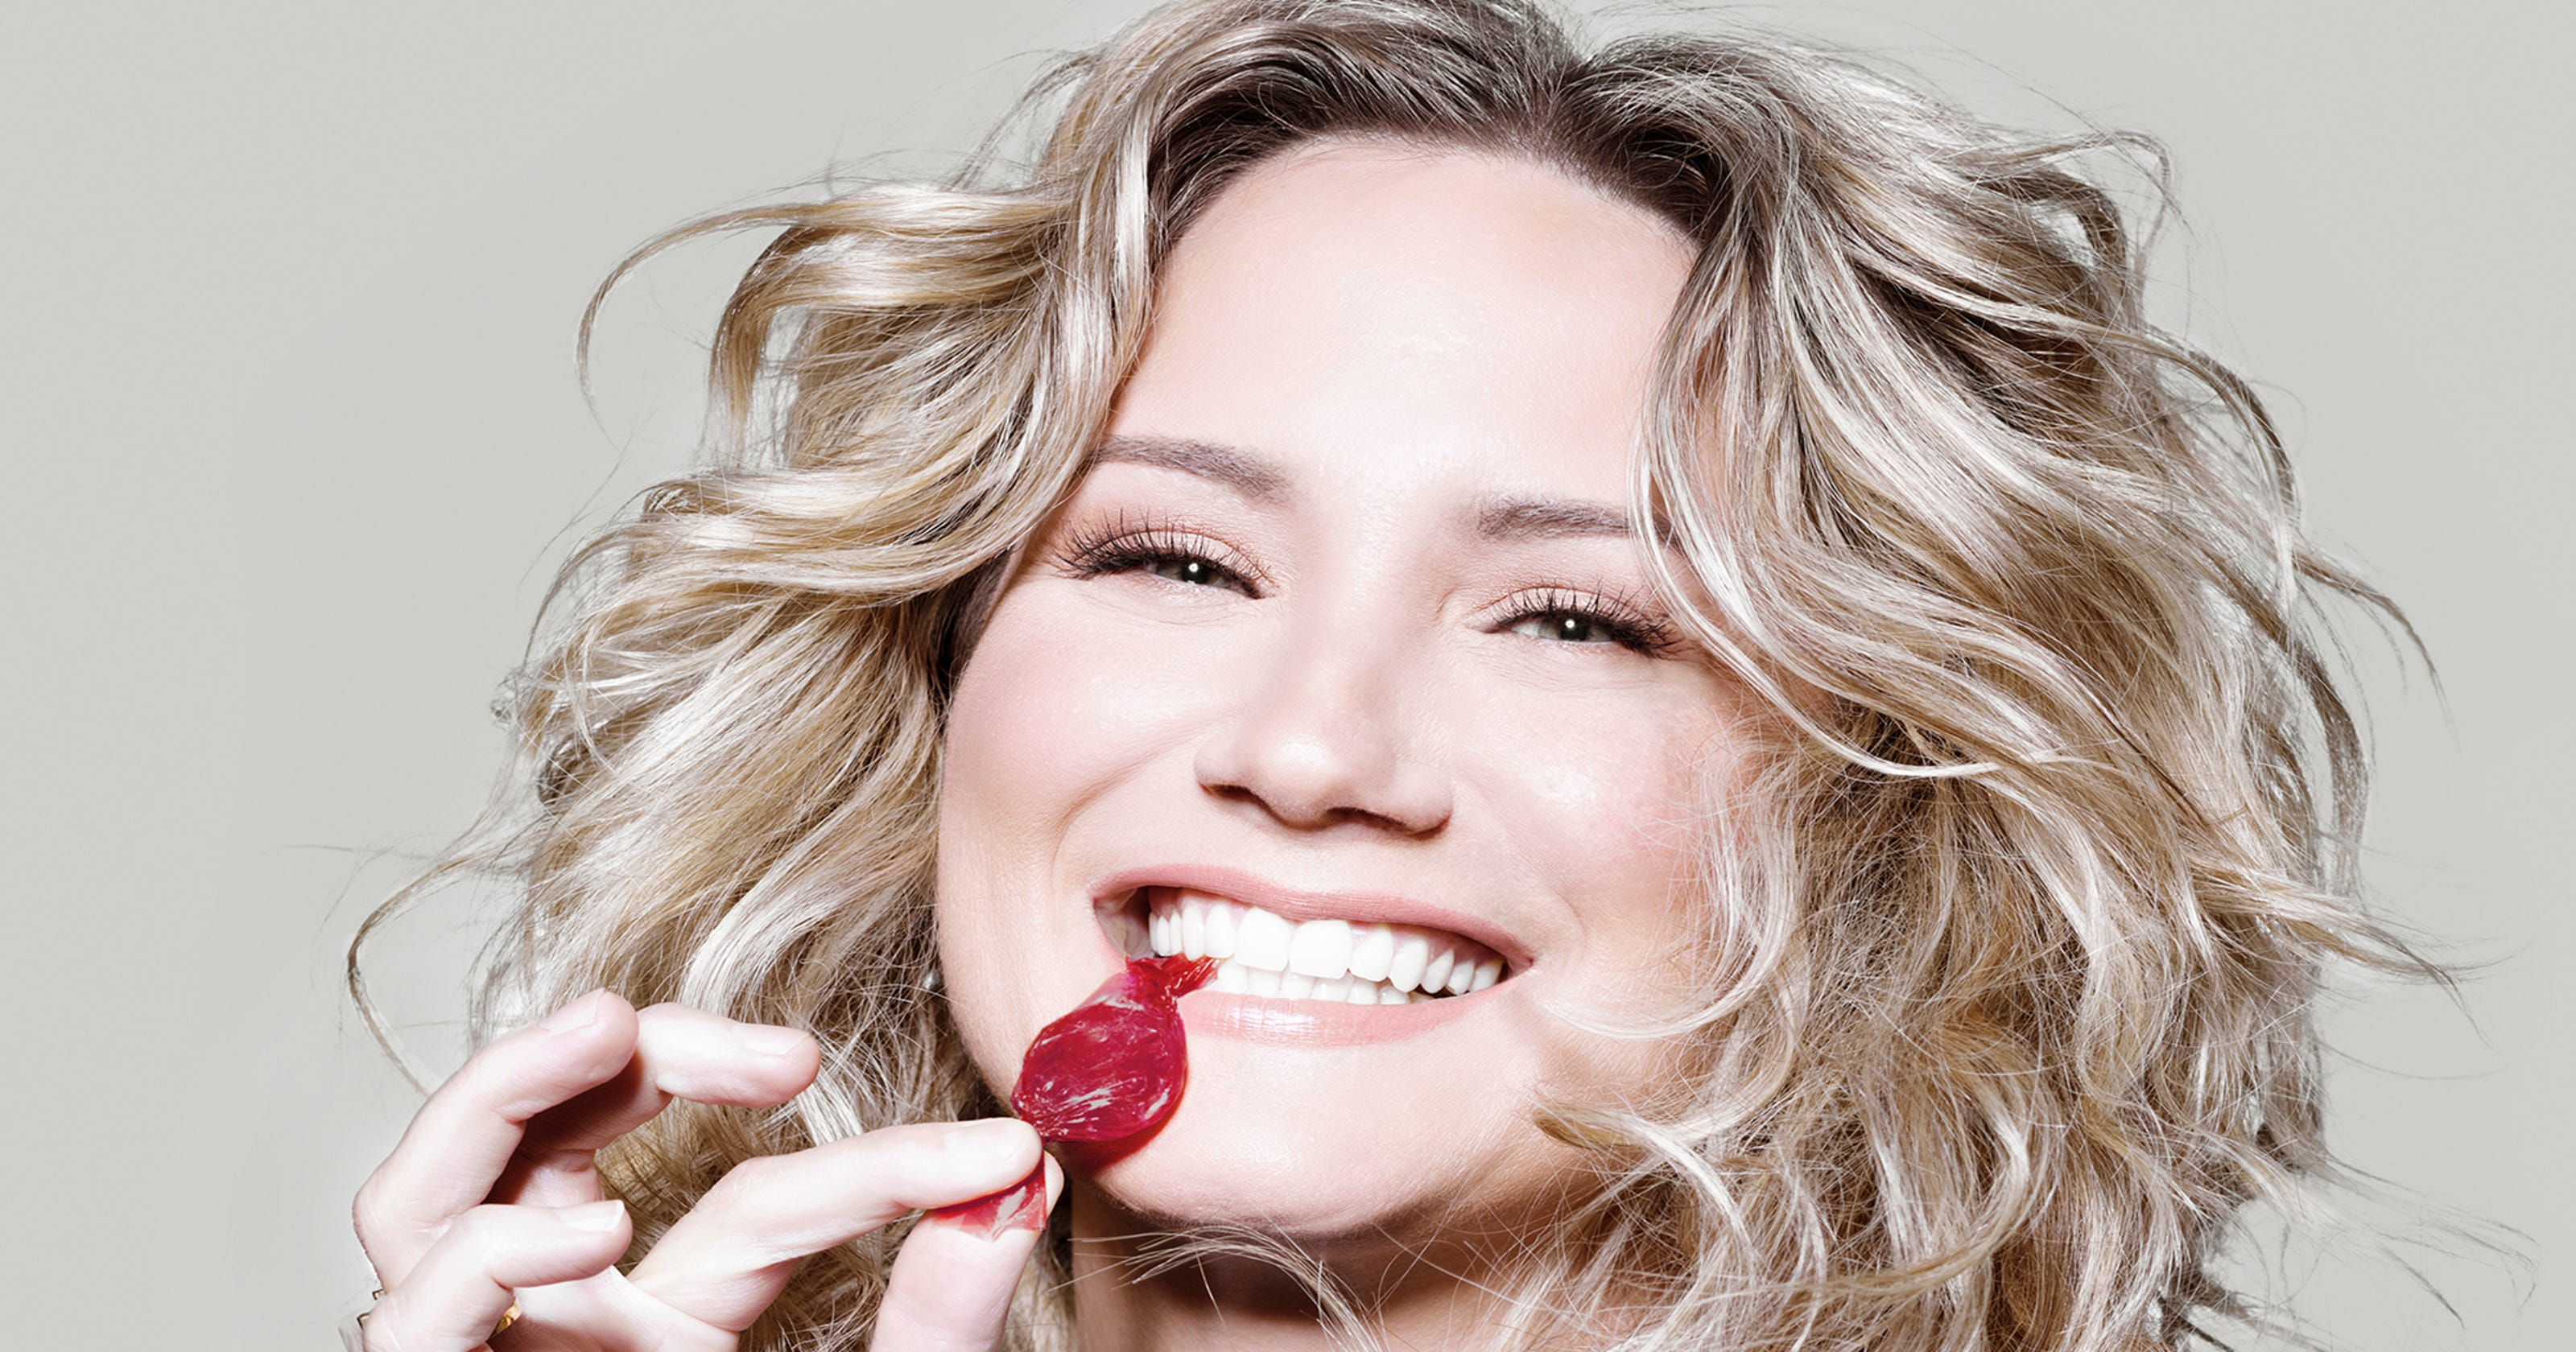 Jennifer Nettles brings Christmas cheer to Tallahassee